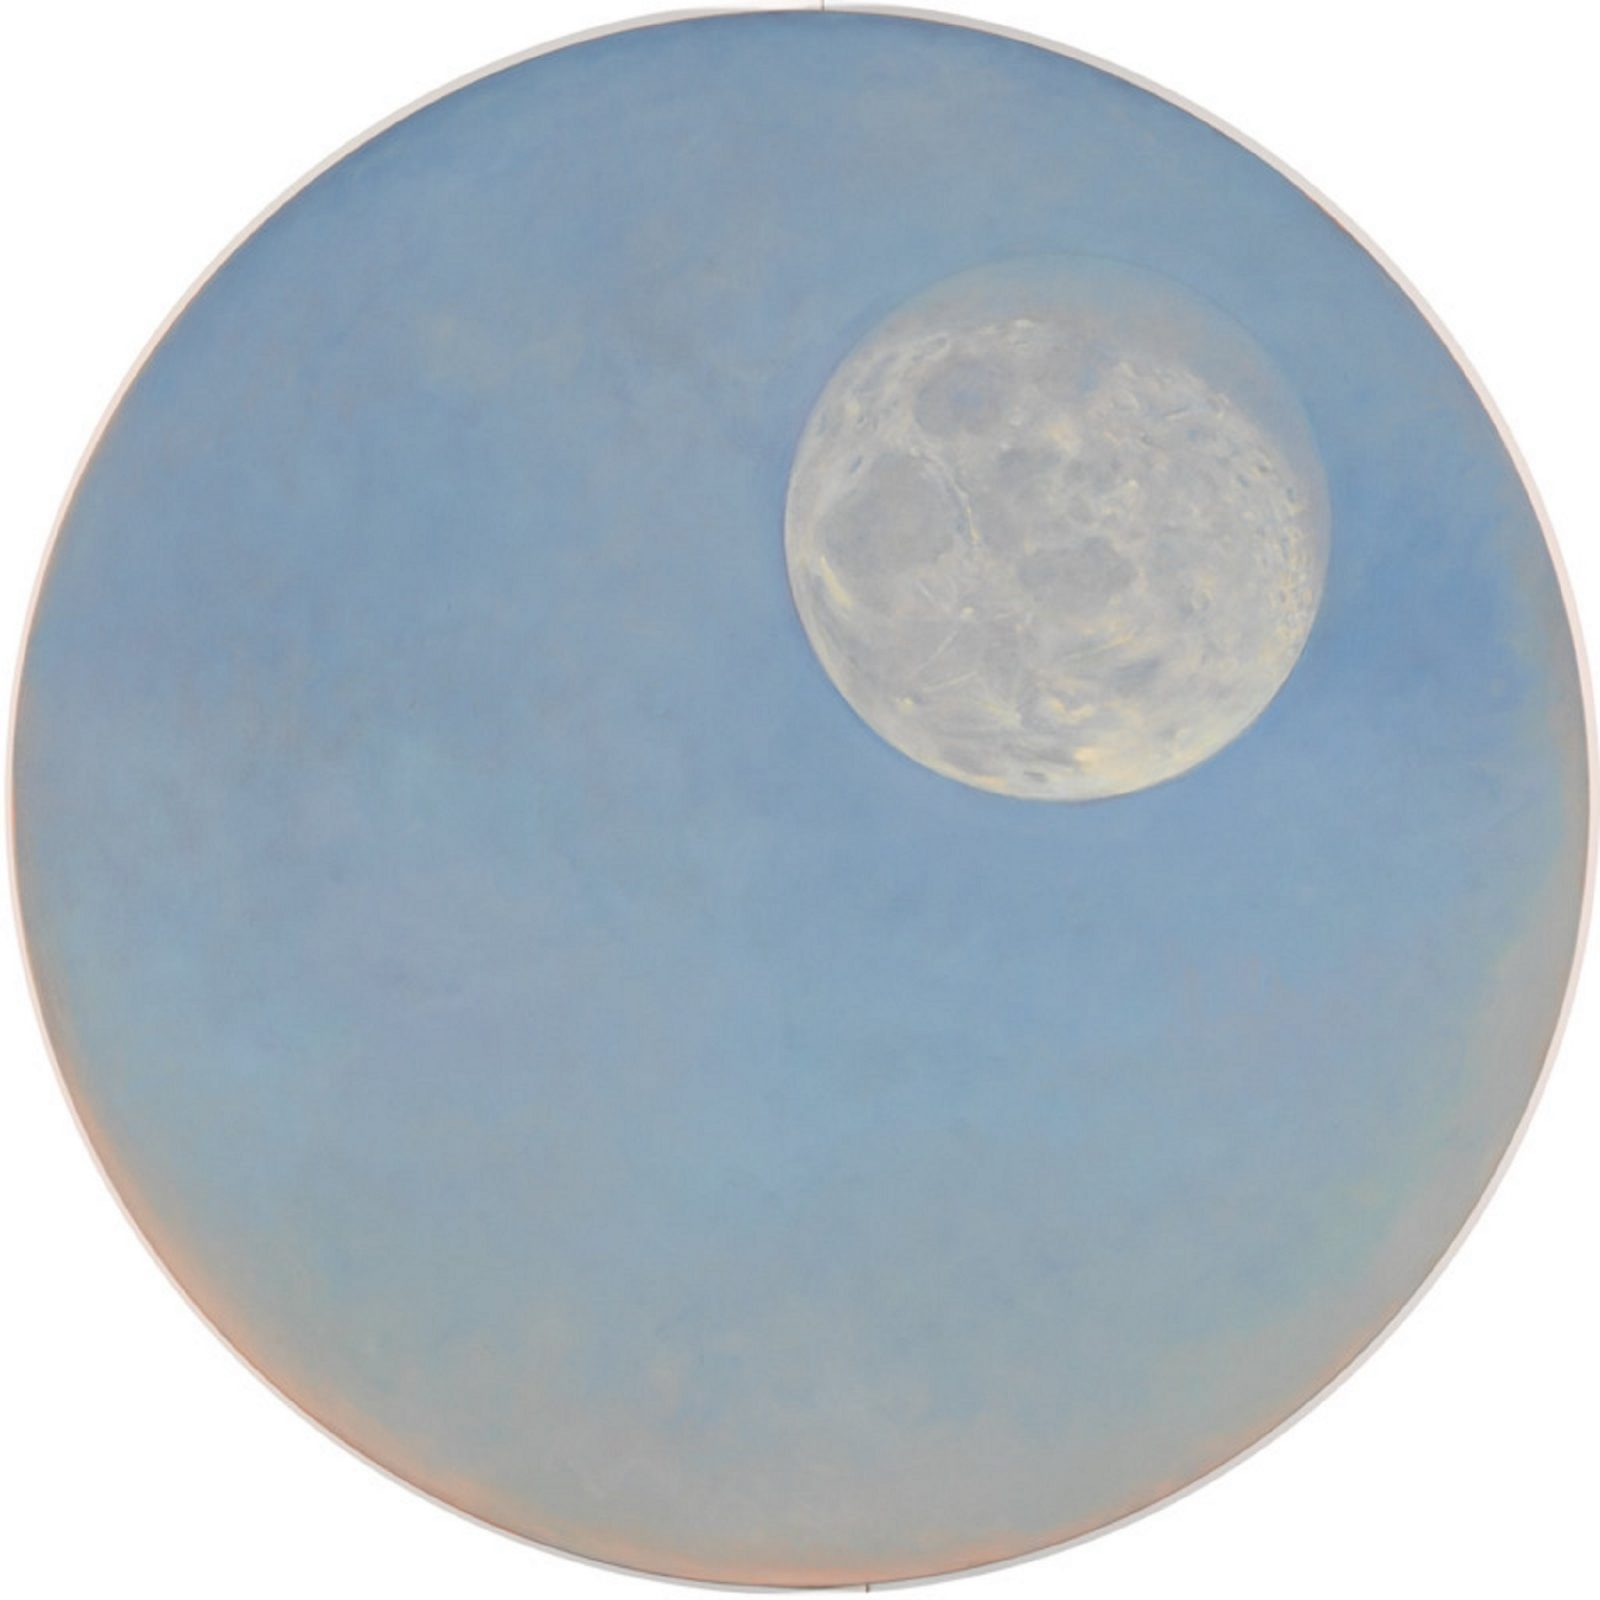 Janet Dawson, Moon at dawn through a telescope, January 2000, 2000, oil on canvas, NGA